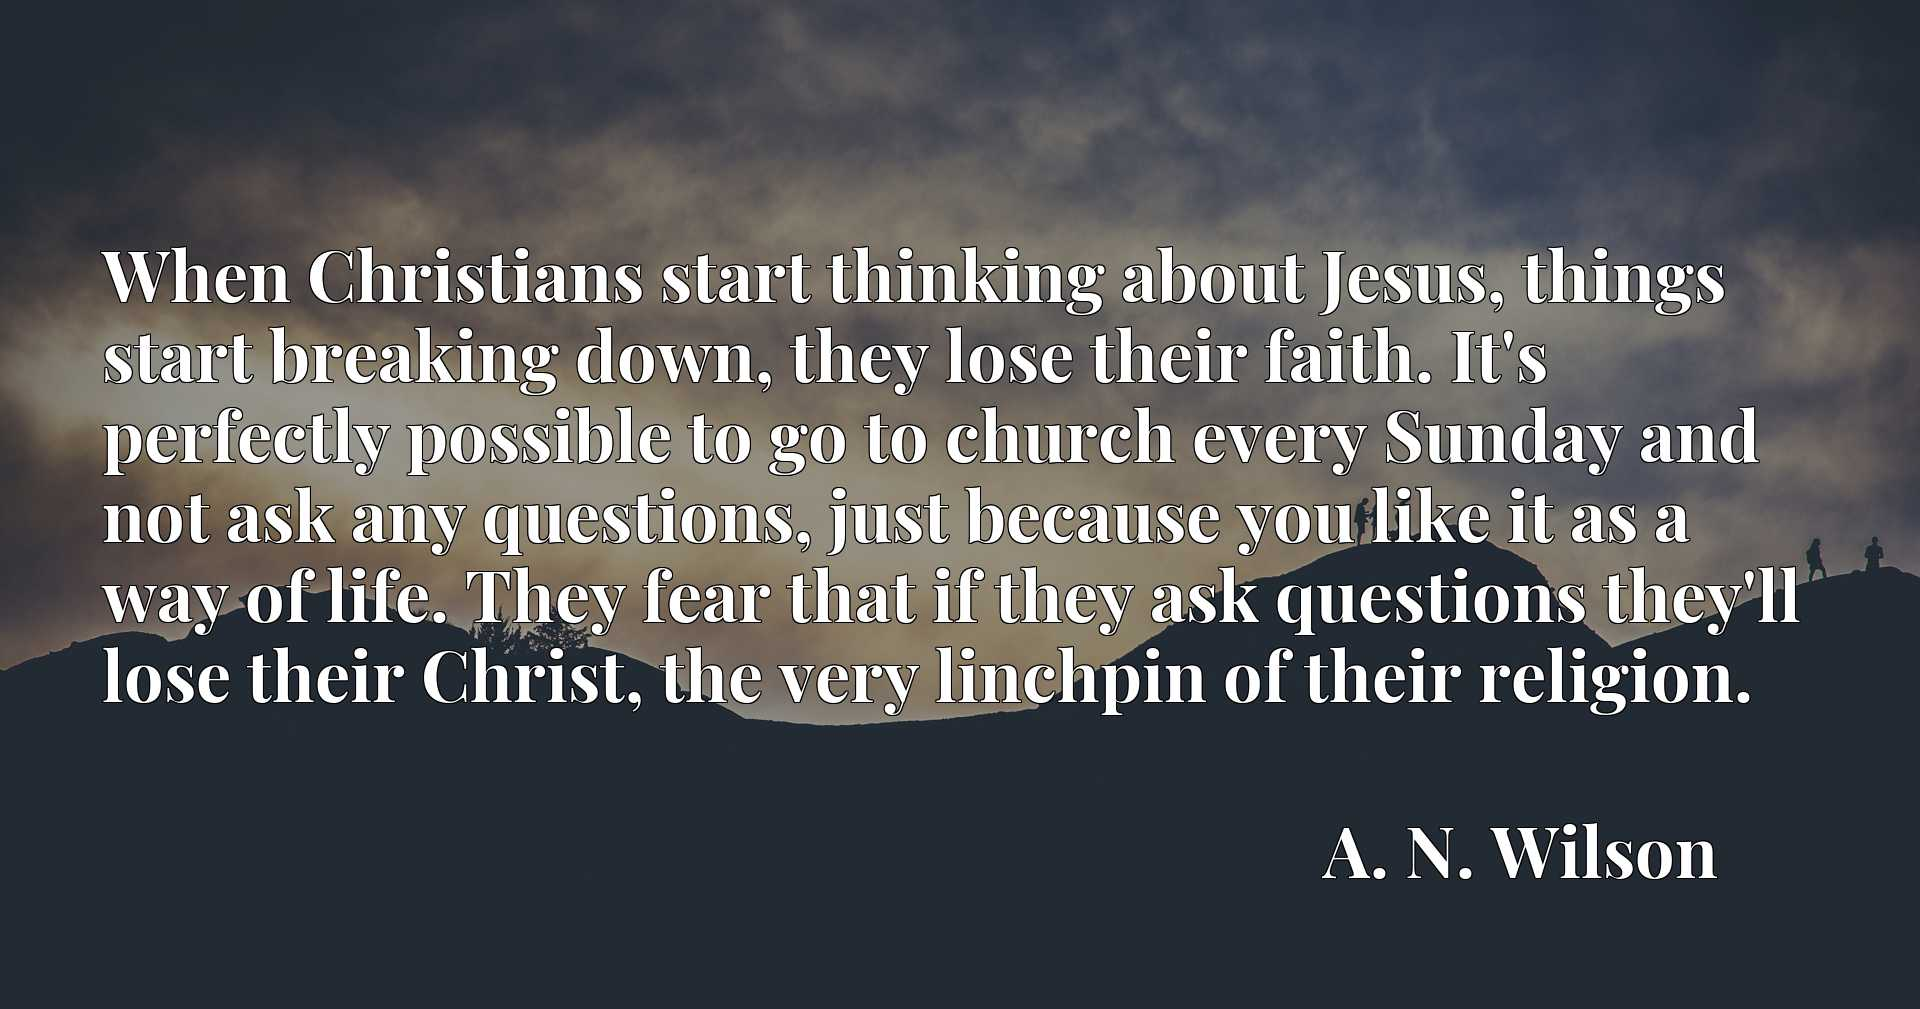 When Christians start thinking about Jesus, things start breaking down, they lose their faith. It's perfectly possible to go to church every Sunday and not ask any questions, just because you like it as a way of life. They fear that if they ask questions they'll lose their Christ, the very linchpin of their religion.